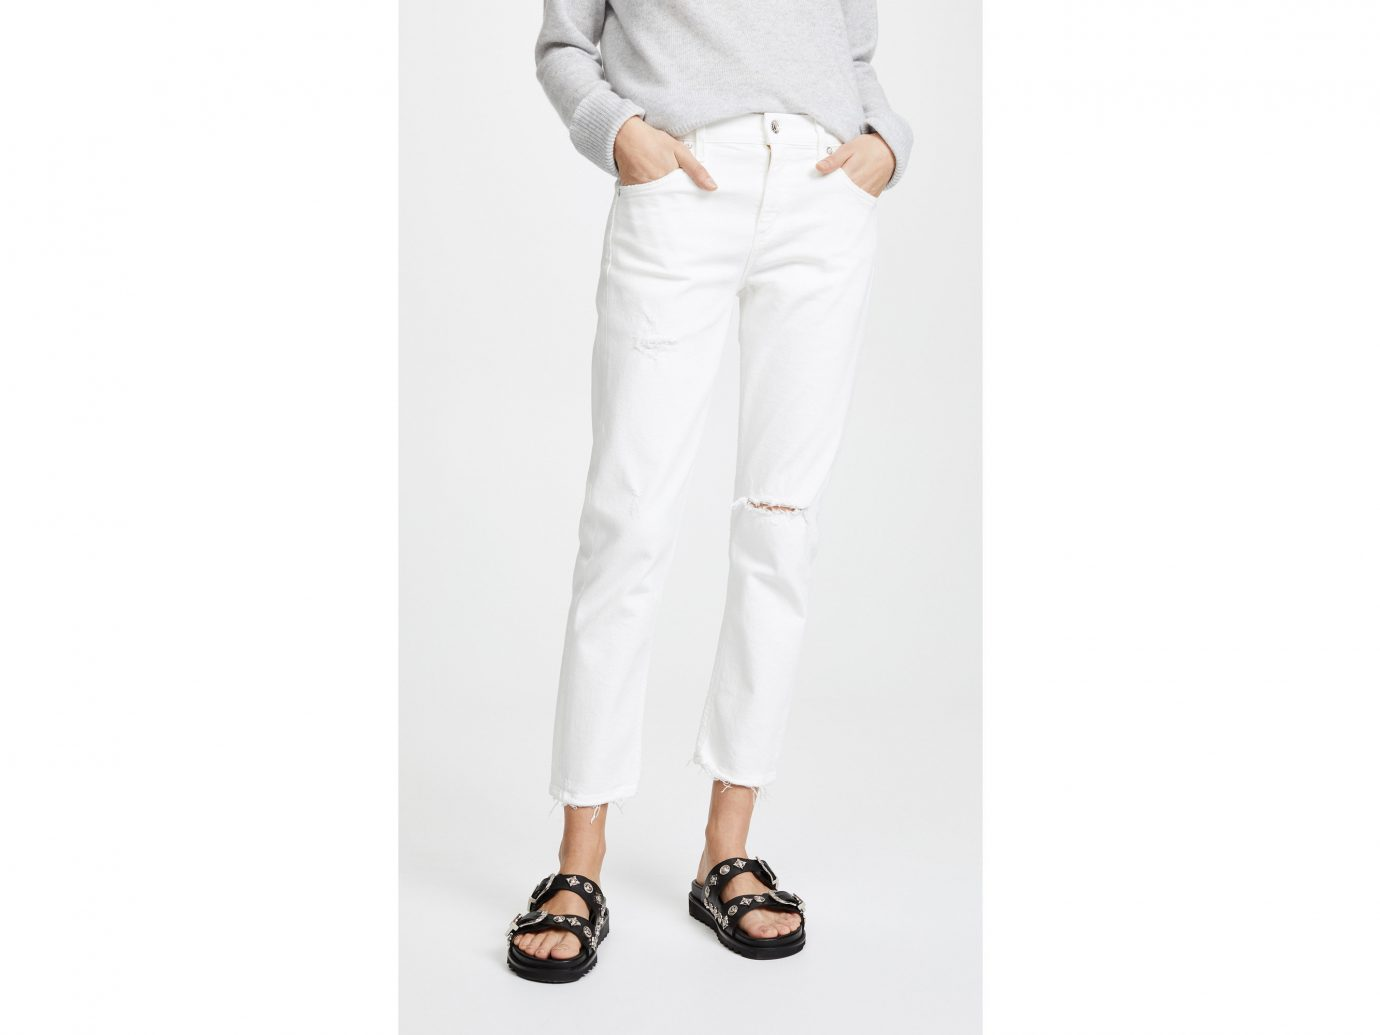 City Palm Springs Style + Design Travel Shop clothing white person standing posing trouser waist wearing joint active pants jeans trousers abdomen trunk pocket shoe dressed